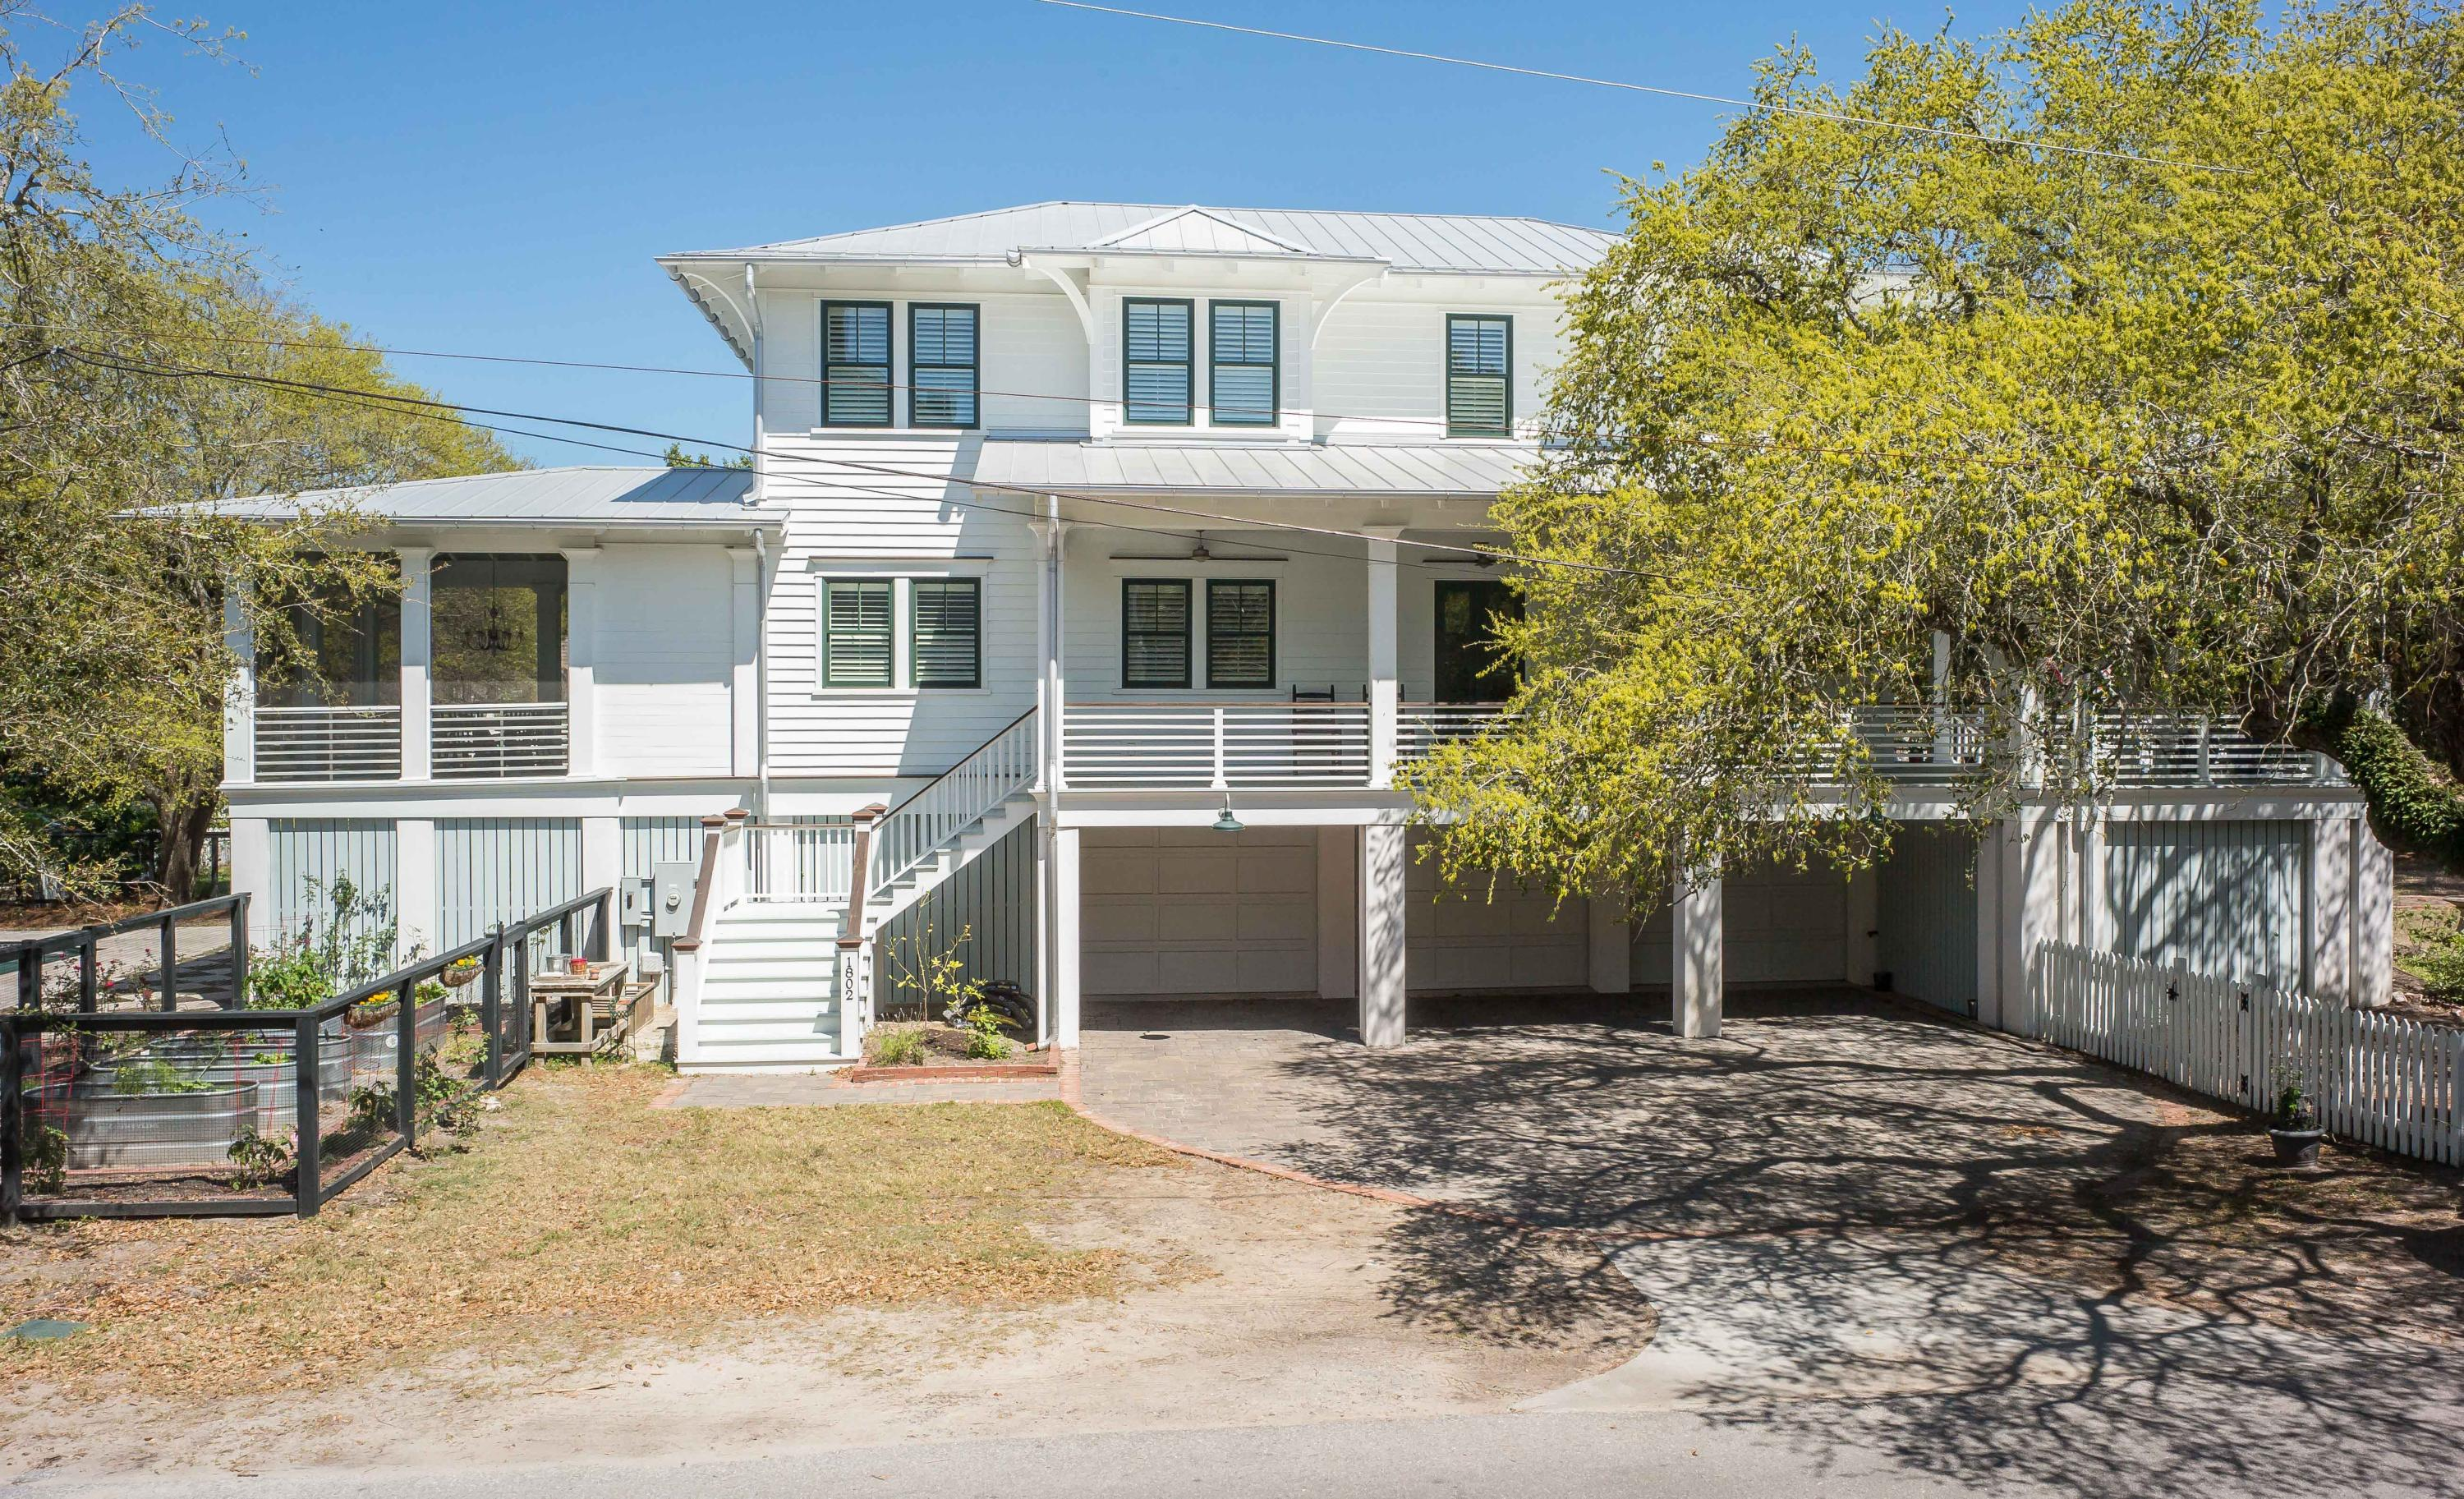 Sullivans Island Homes For Sale - 1802 Ion, Sullivans Island, SC - 36